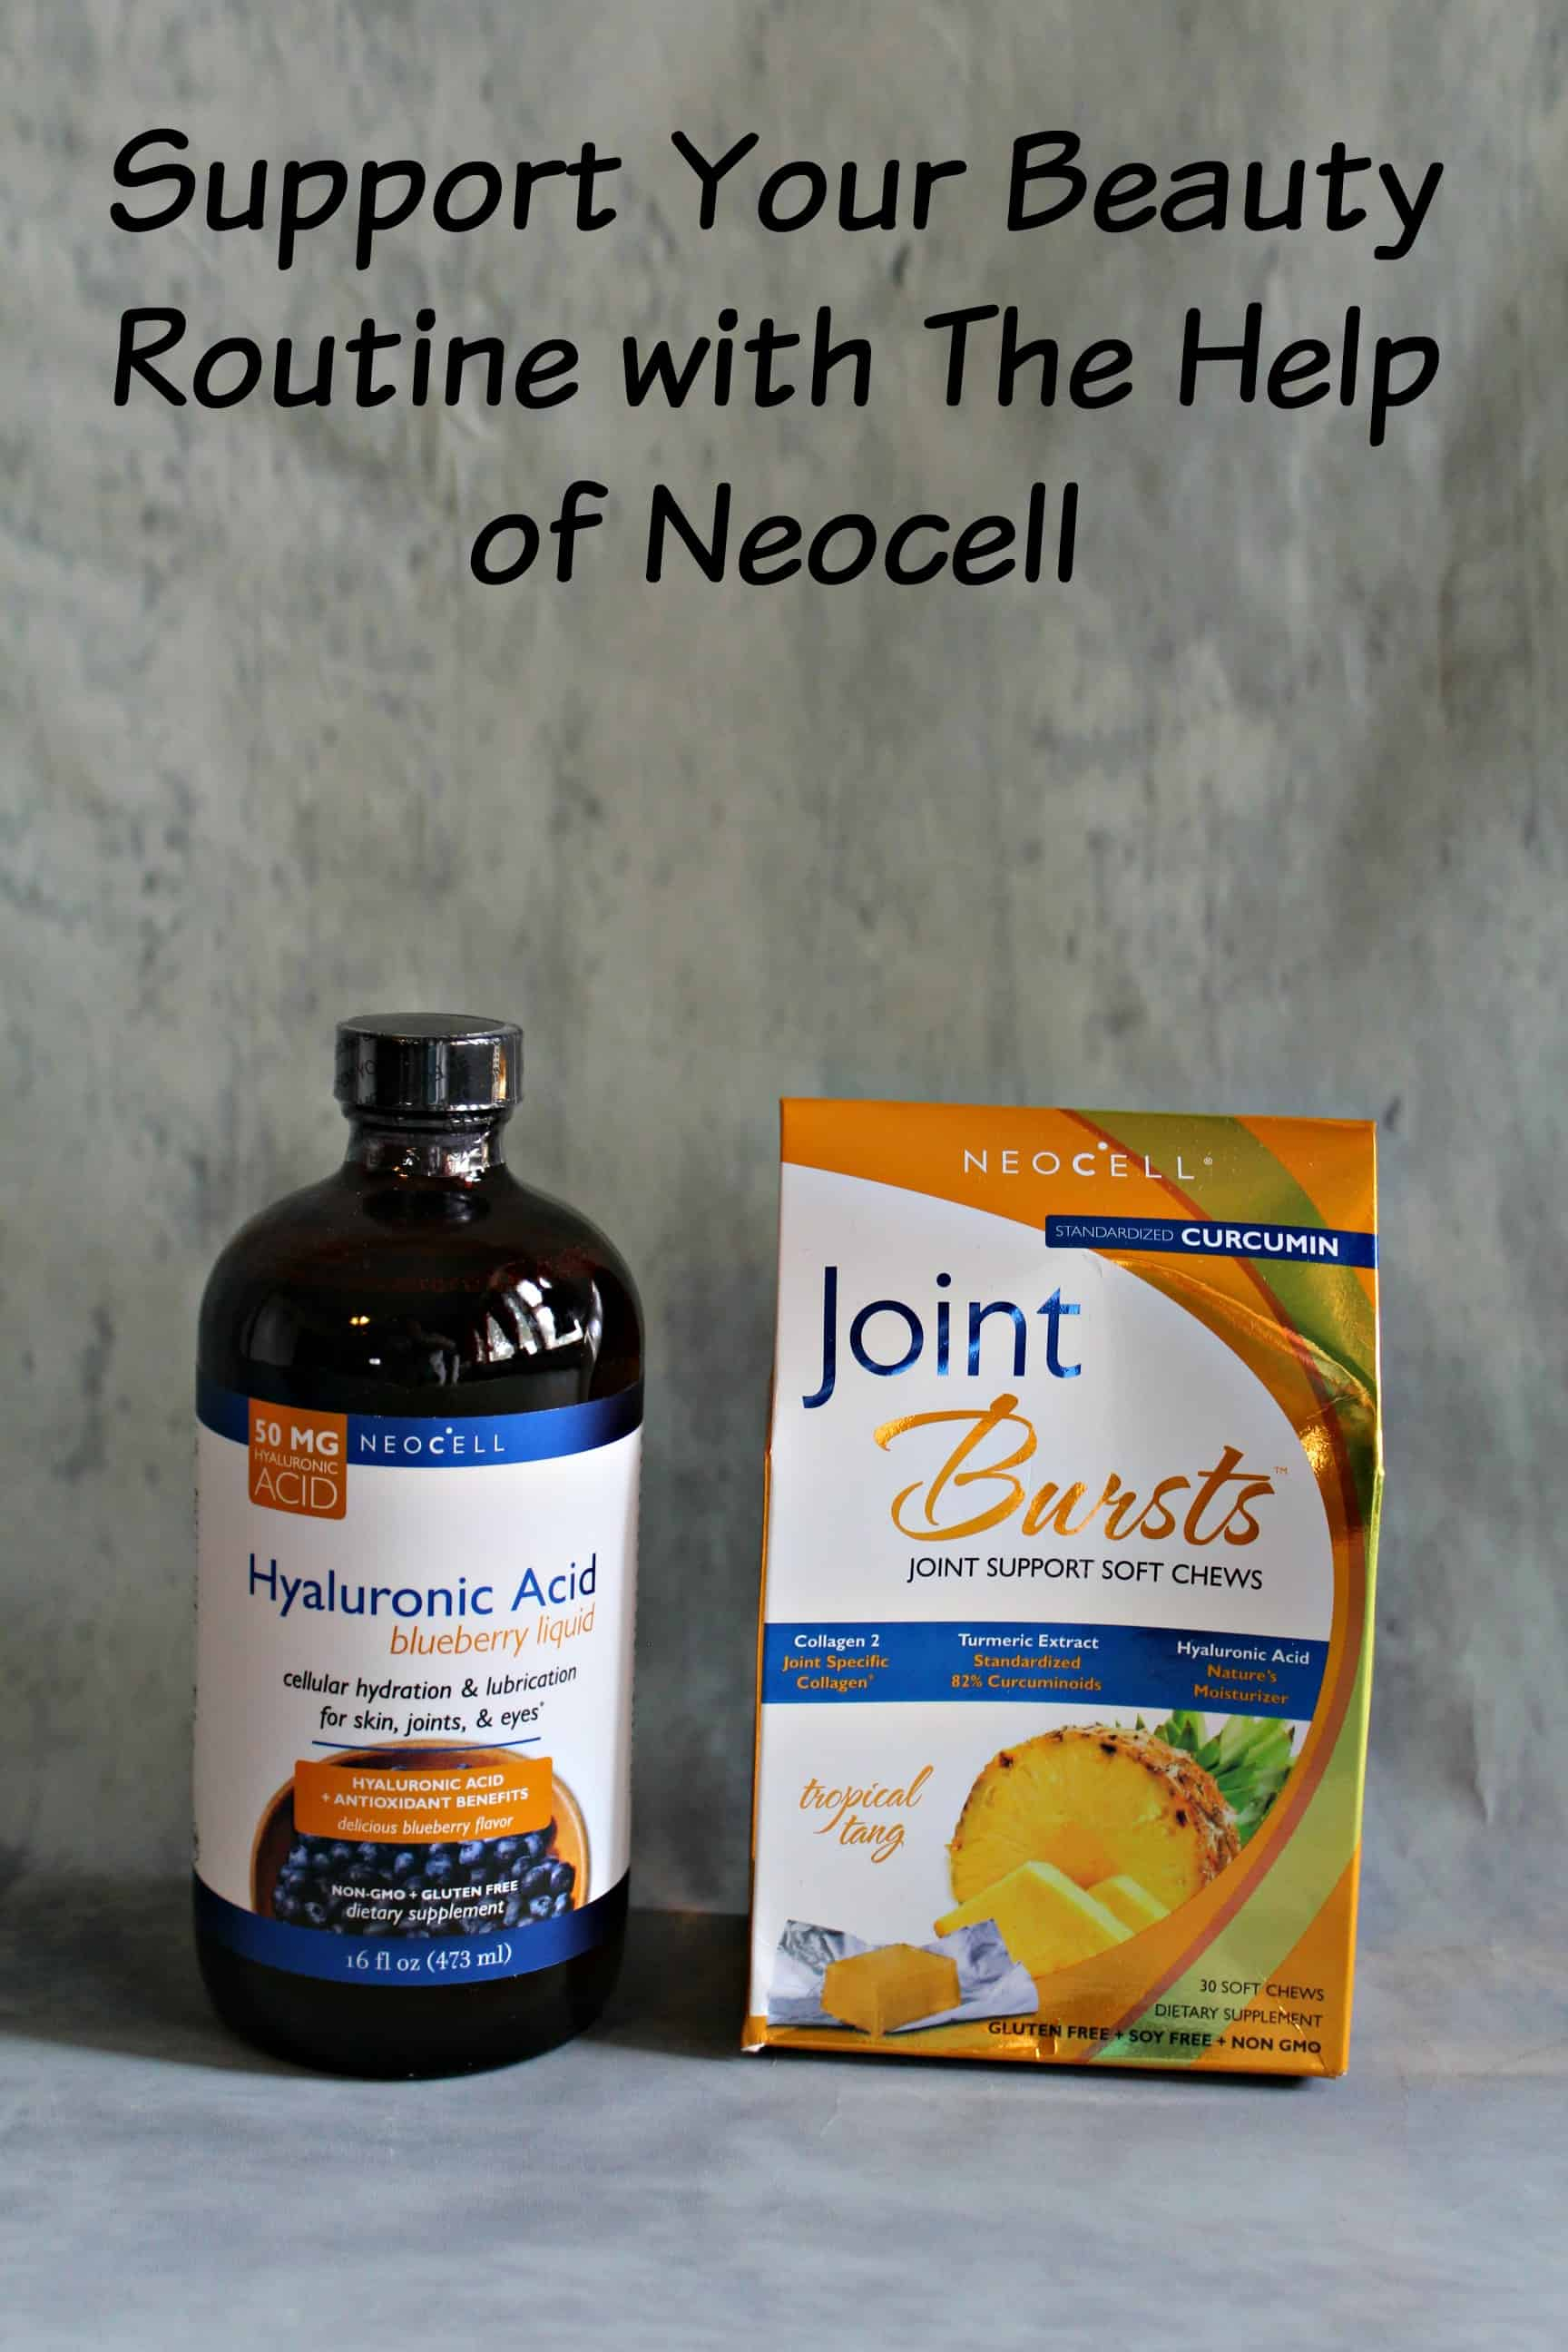 Support Your Beauty Routine with the help of Neocell